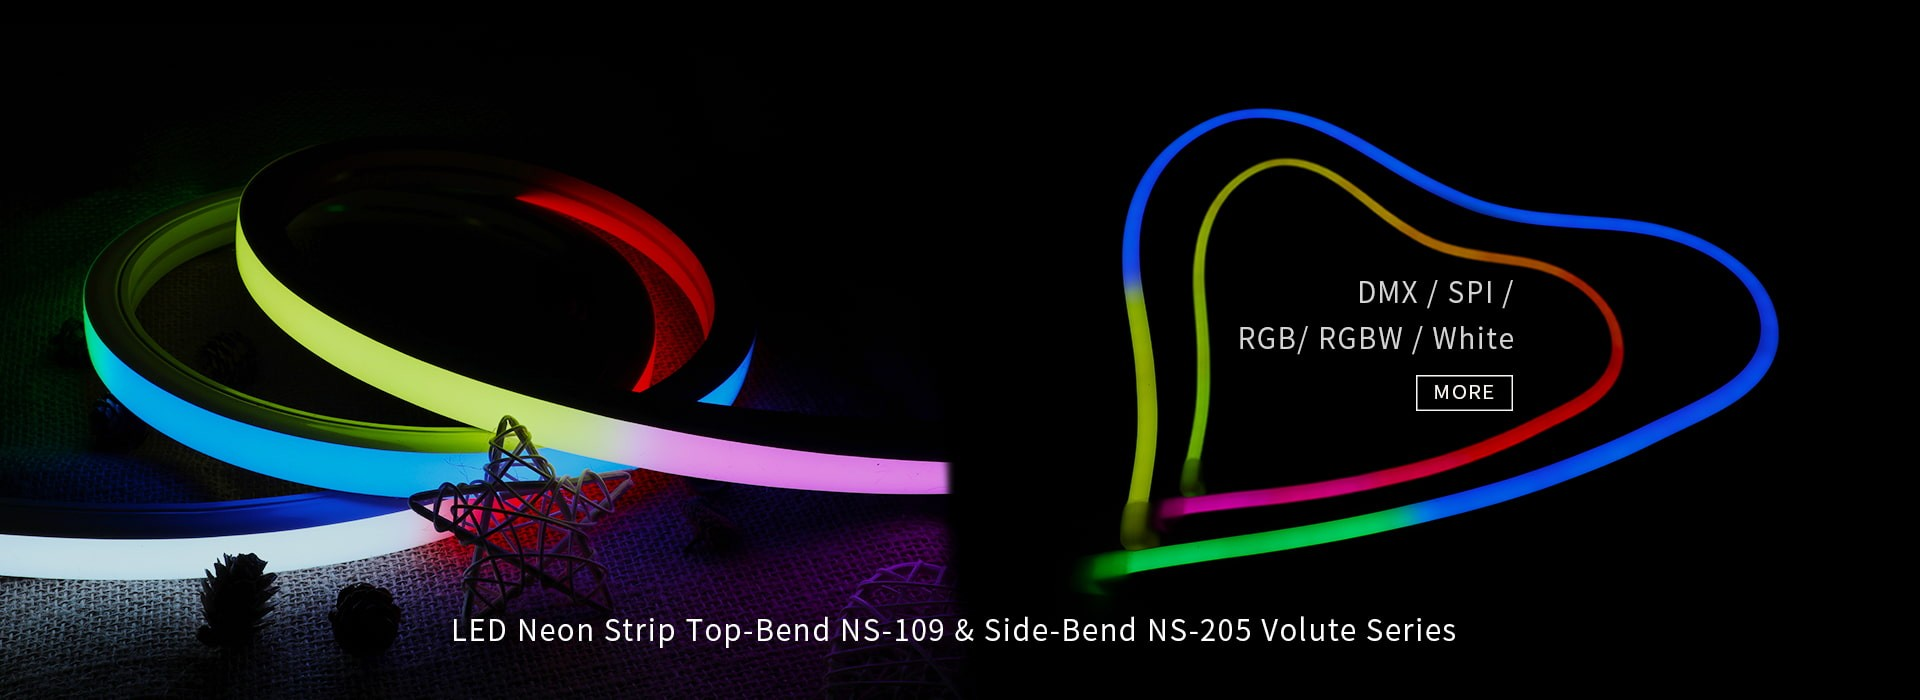 LED Neon Strip Top-Bend NS-109 & Side-Bend NS-205 Volute Series